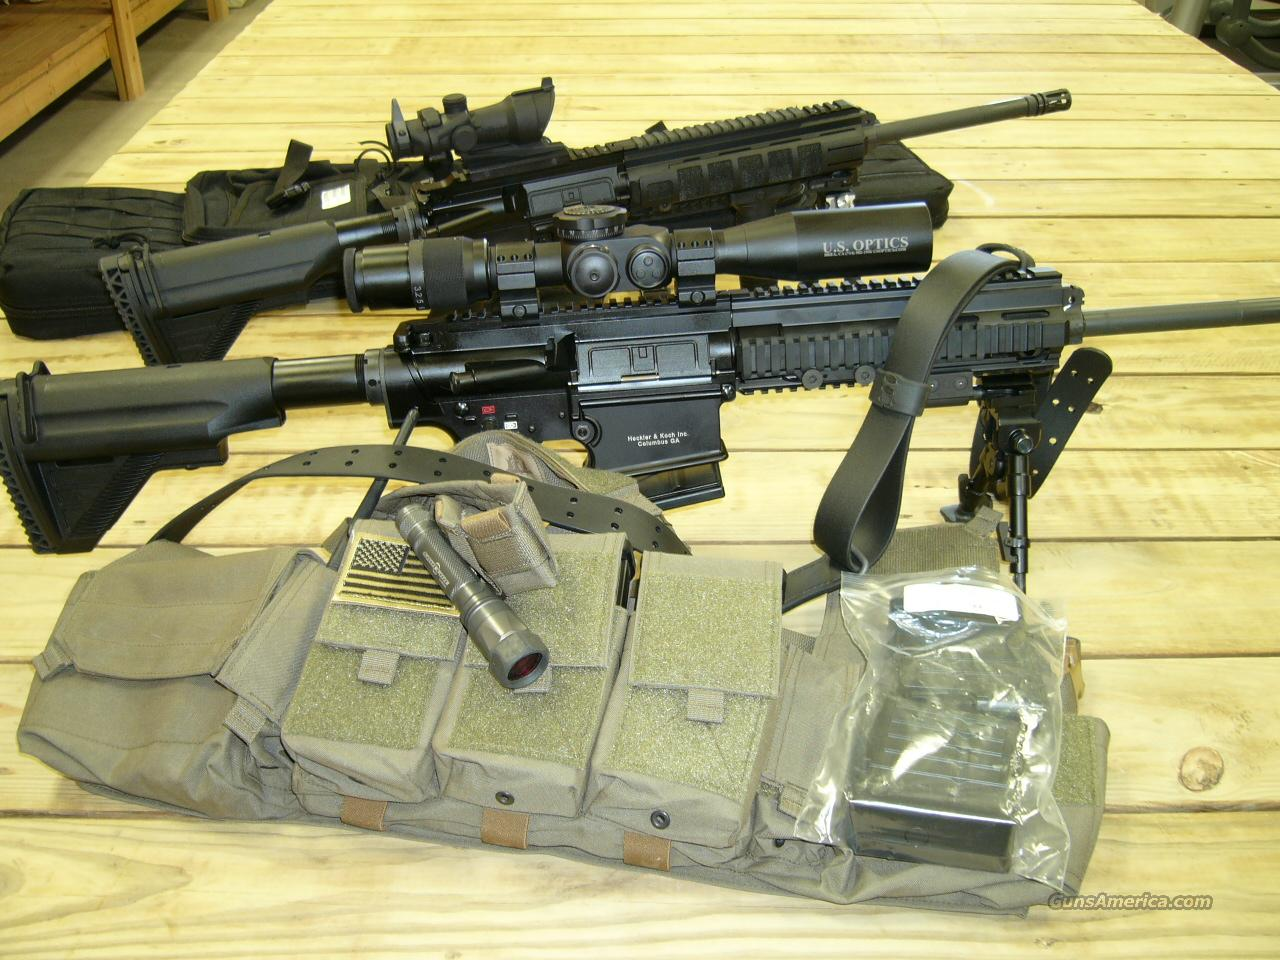 H&K MR762A1 HK  417 HECKLER KOCH NOT HK MR 556 A1 HK 416  Guns > Rifles > Heckler & Koch Rifles > Tactical